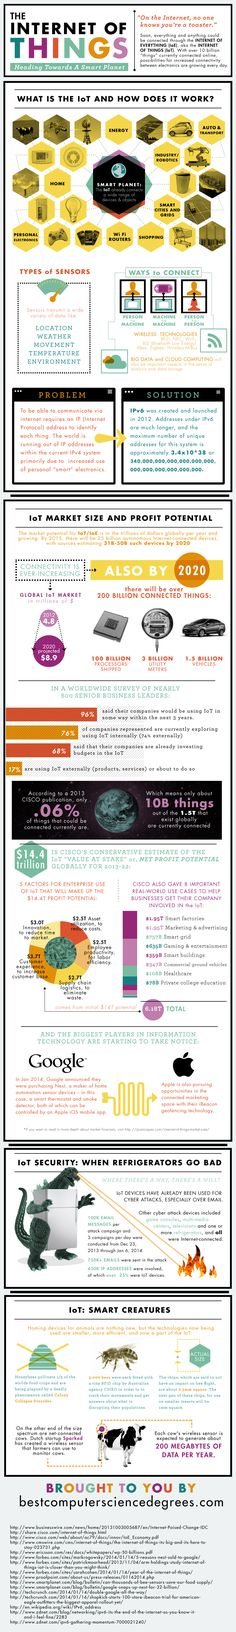 The Internet of Things (IoT) explained quickly by infographic. Image courtesy of Best Computer Science Degrees Big Data, Data Science, Computer Science, Computer Programming, Quantified Self, Innovation, It Management, Connect Online, Cloud Computing